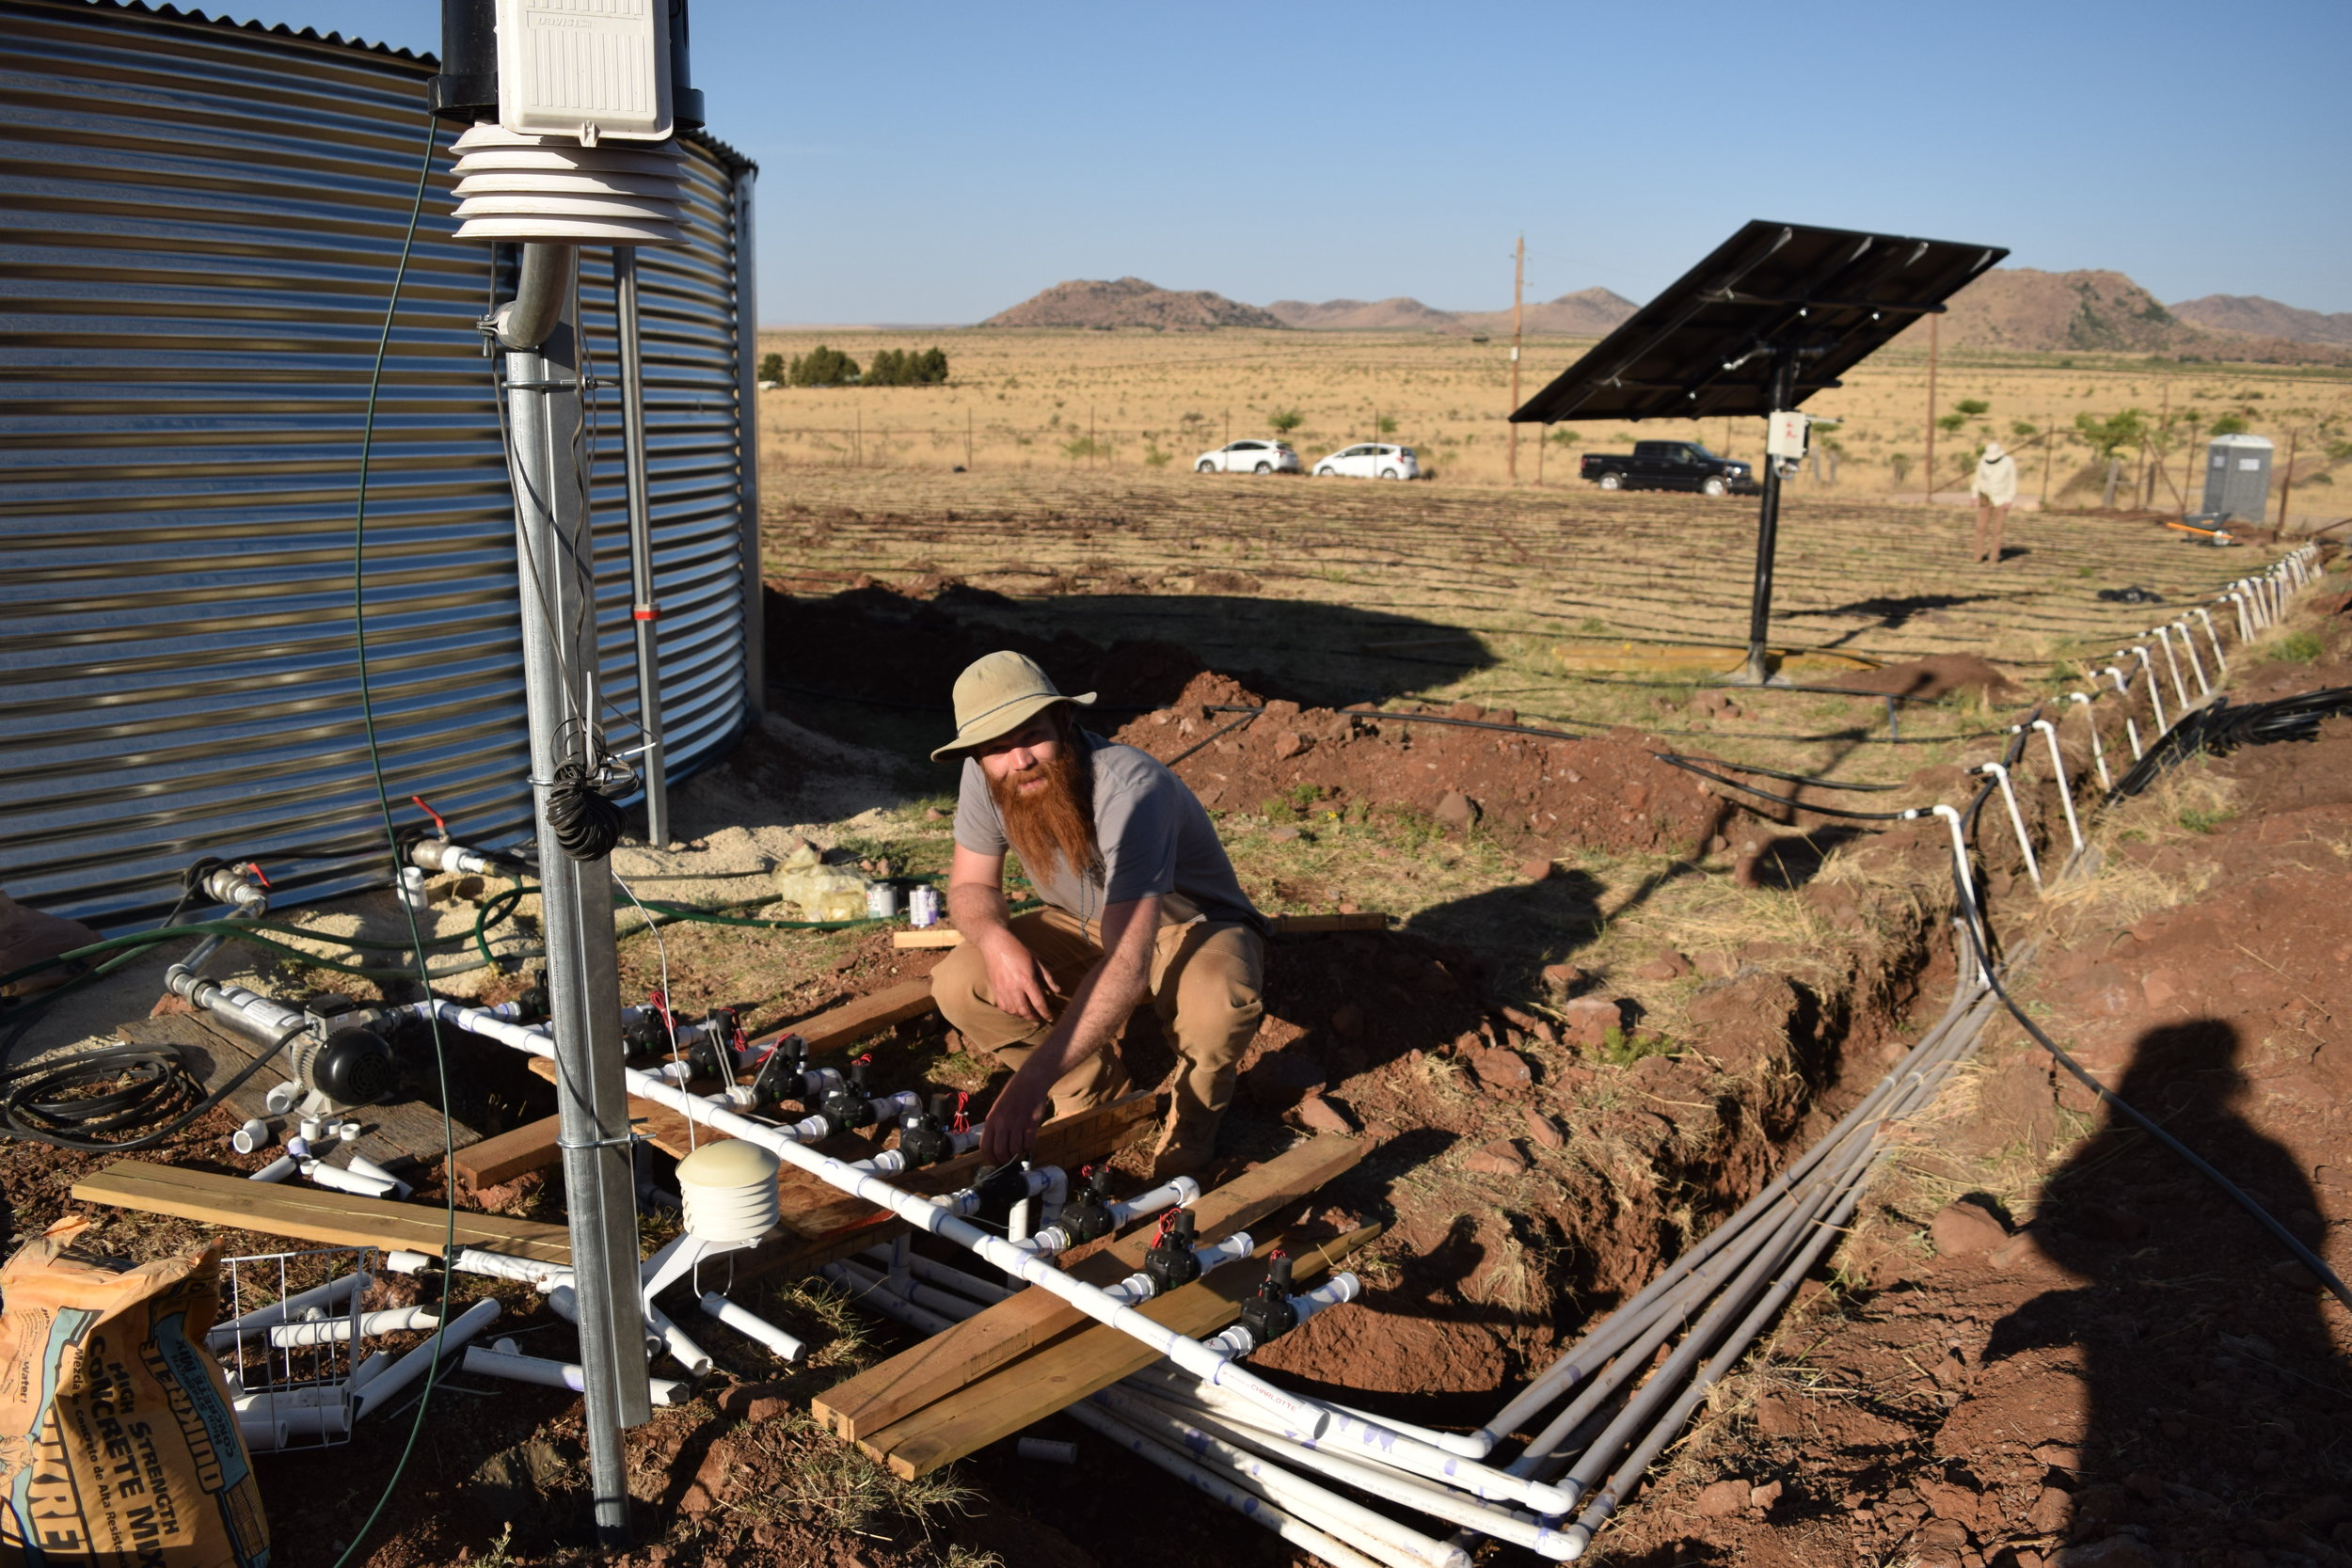 Here you can see all the pieces of the irrigation system except the well. Water flows from the silver storage tank through the solar powered irrigation pump, through the valve manifold, which is controlled by the irrigation controller, then is sent to any of 7 irrigation zones through the PVC pipes and into the drip tubing,